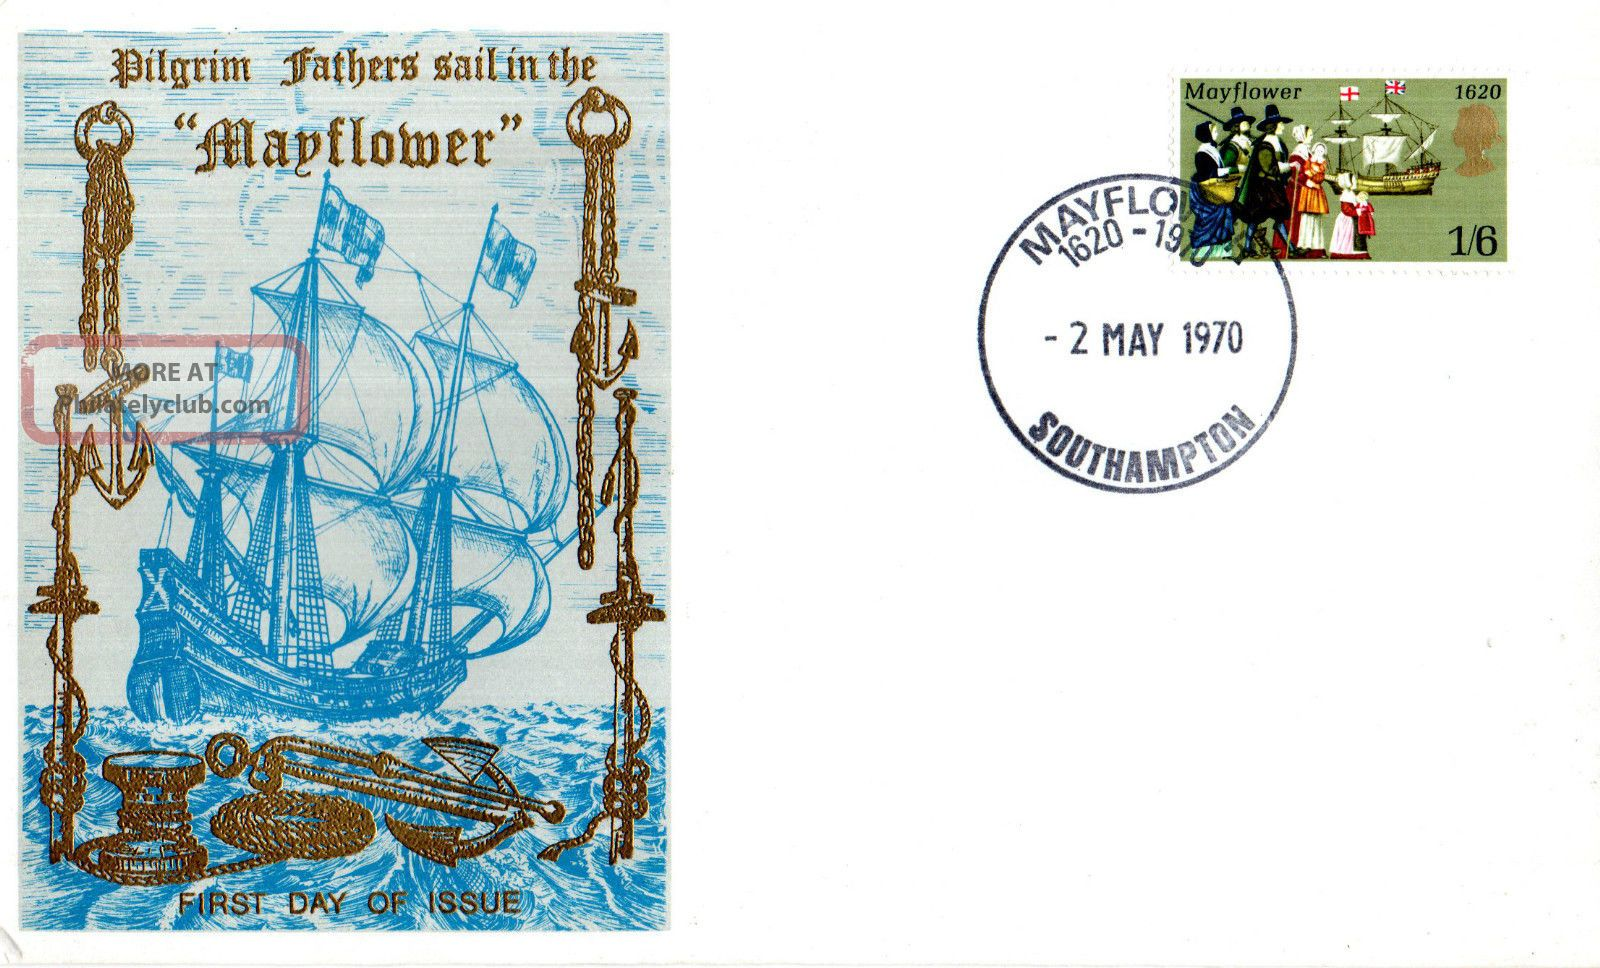 2 May 1970 Mayflower Thames Commemorative Cover Southampton Shs Transportation photo